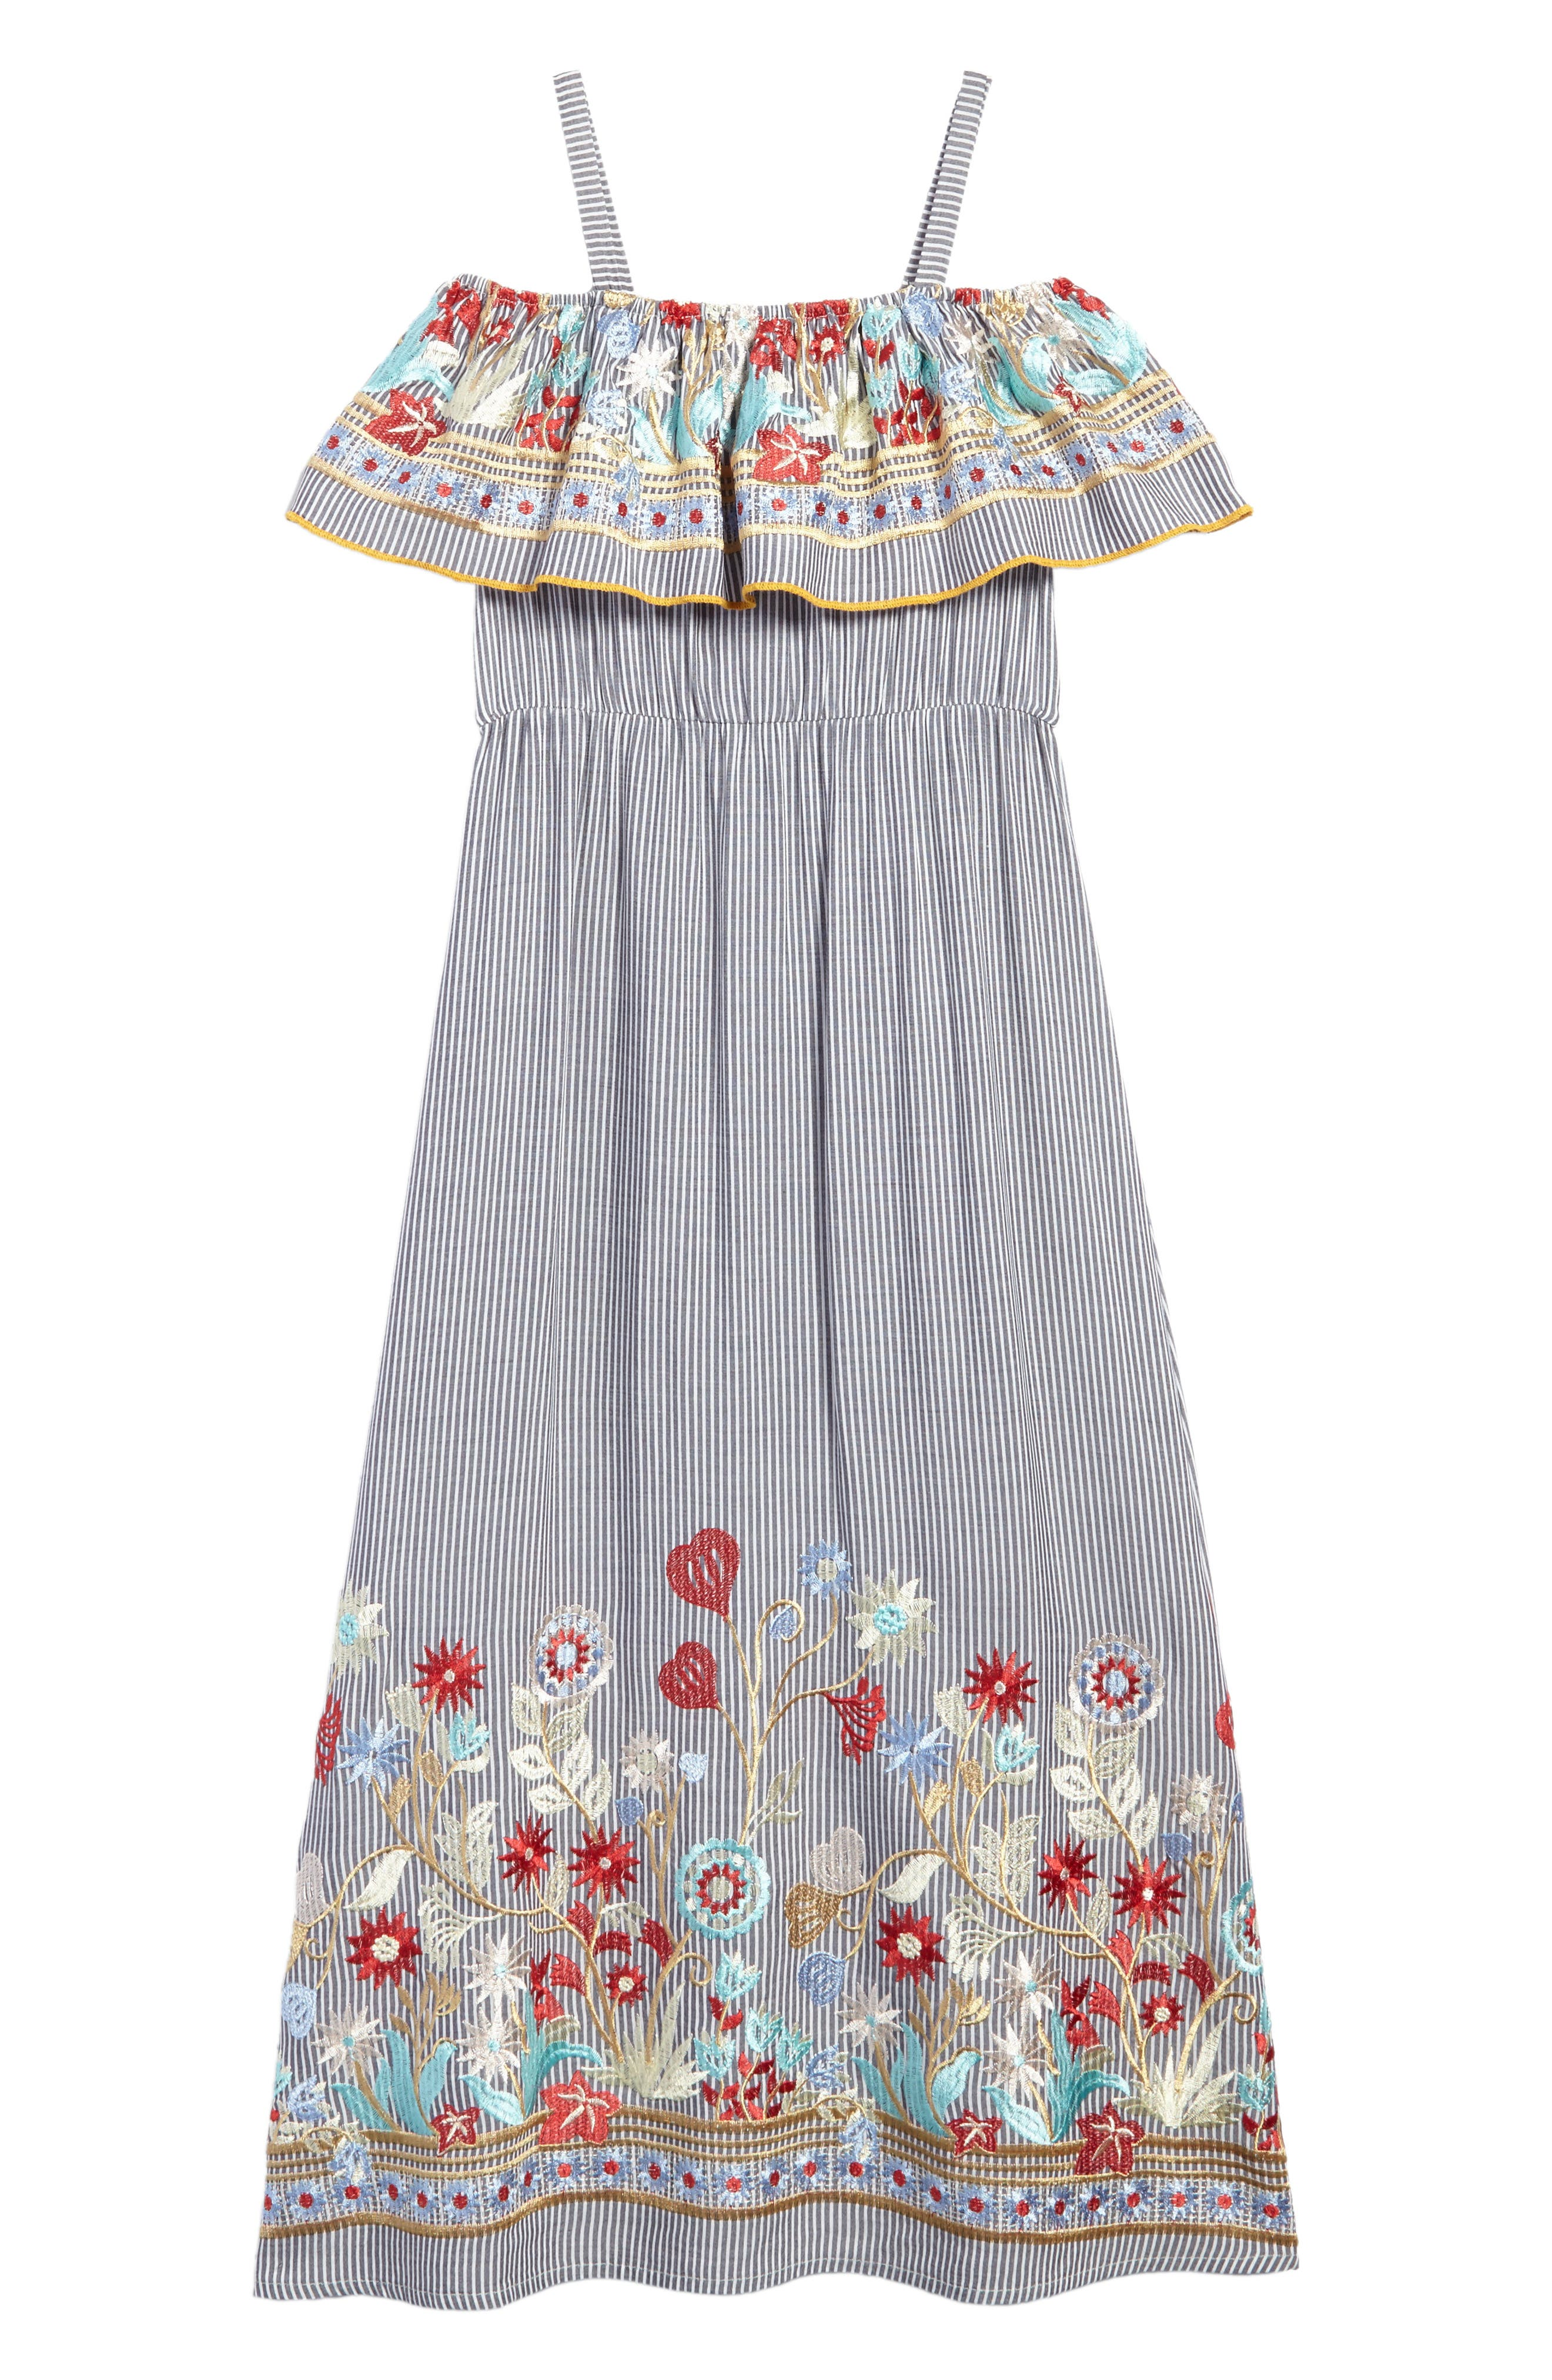 Flower Embroidered Maxi Dress,                         Main,                         color, Gray/ Ivory